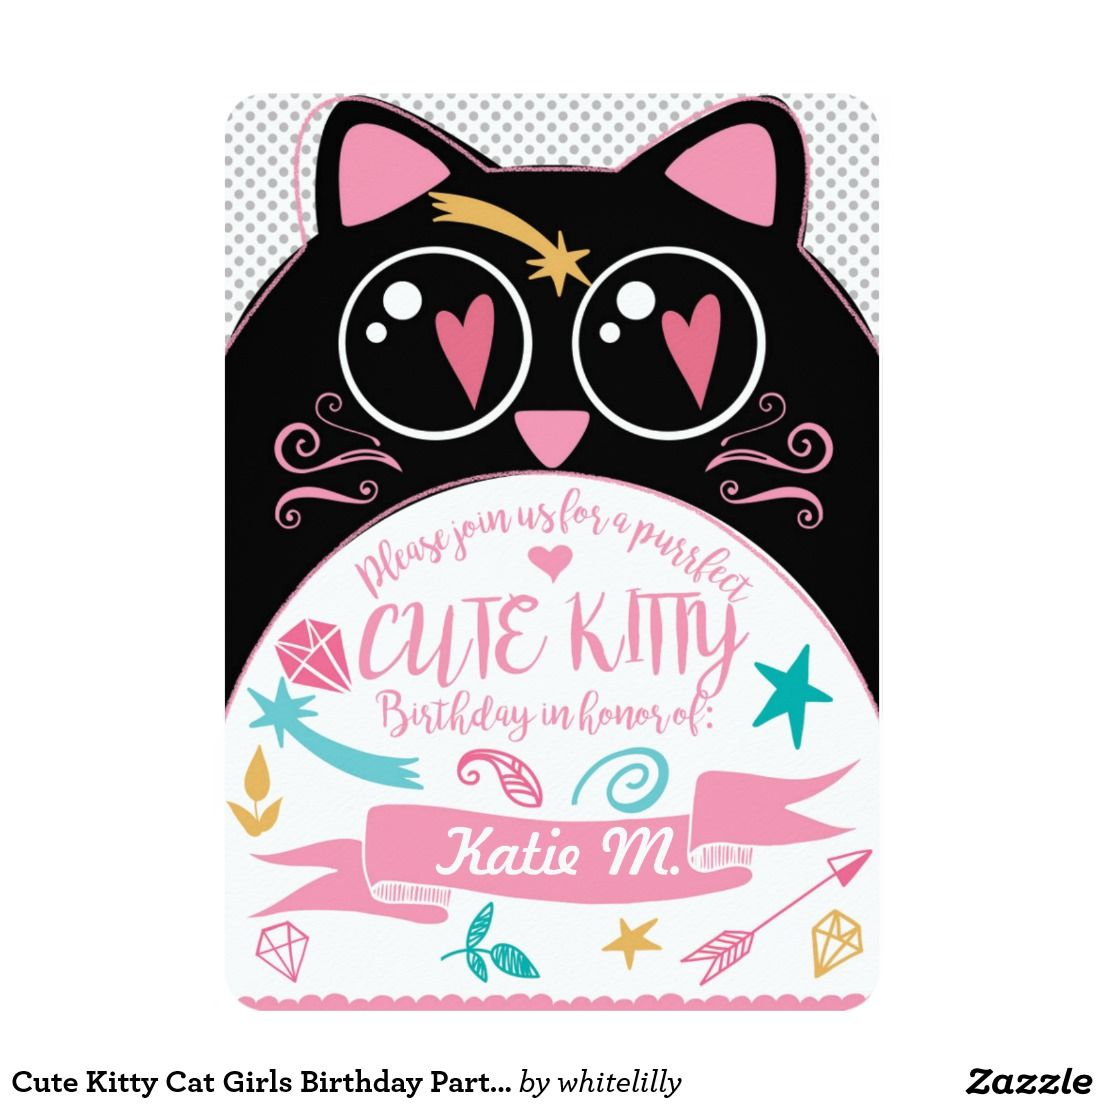 Cute Kitty Cat Girls Birthday Party Invite Kawaii – Cat Party Invitations